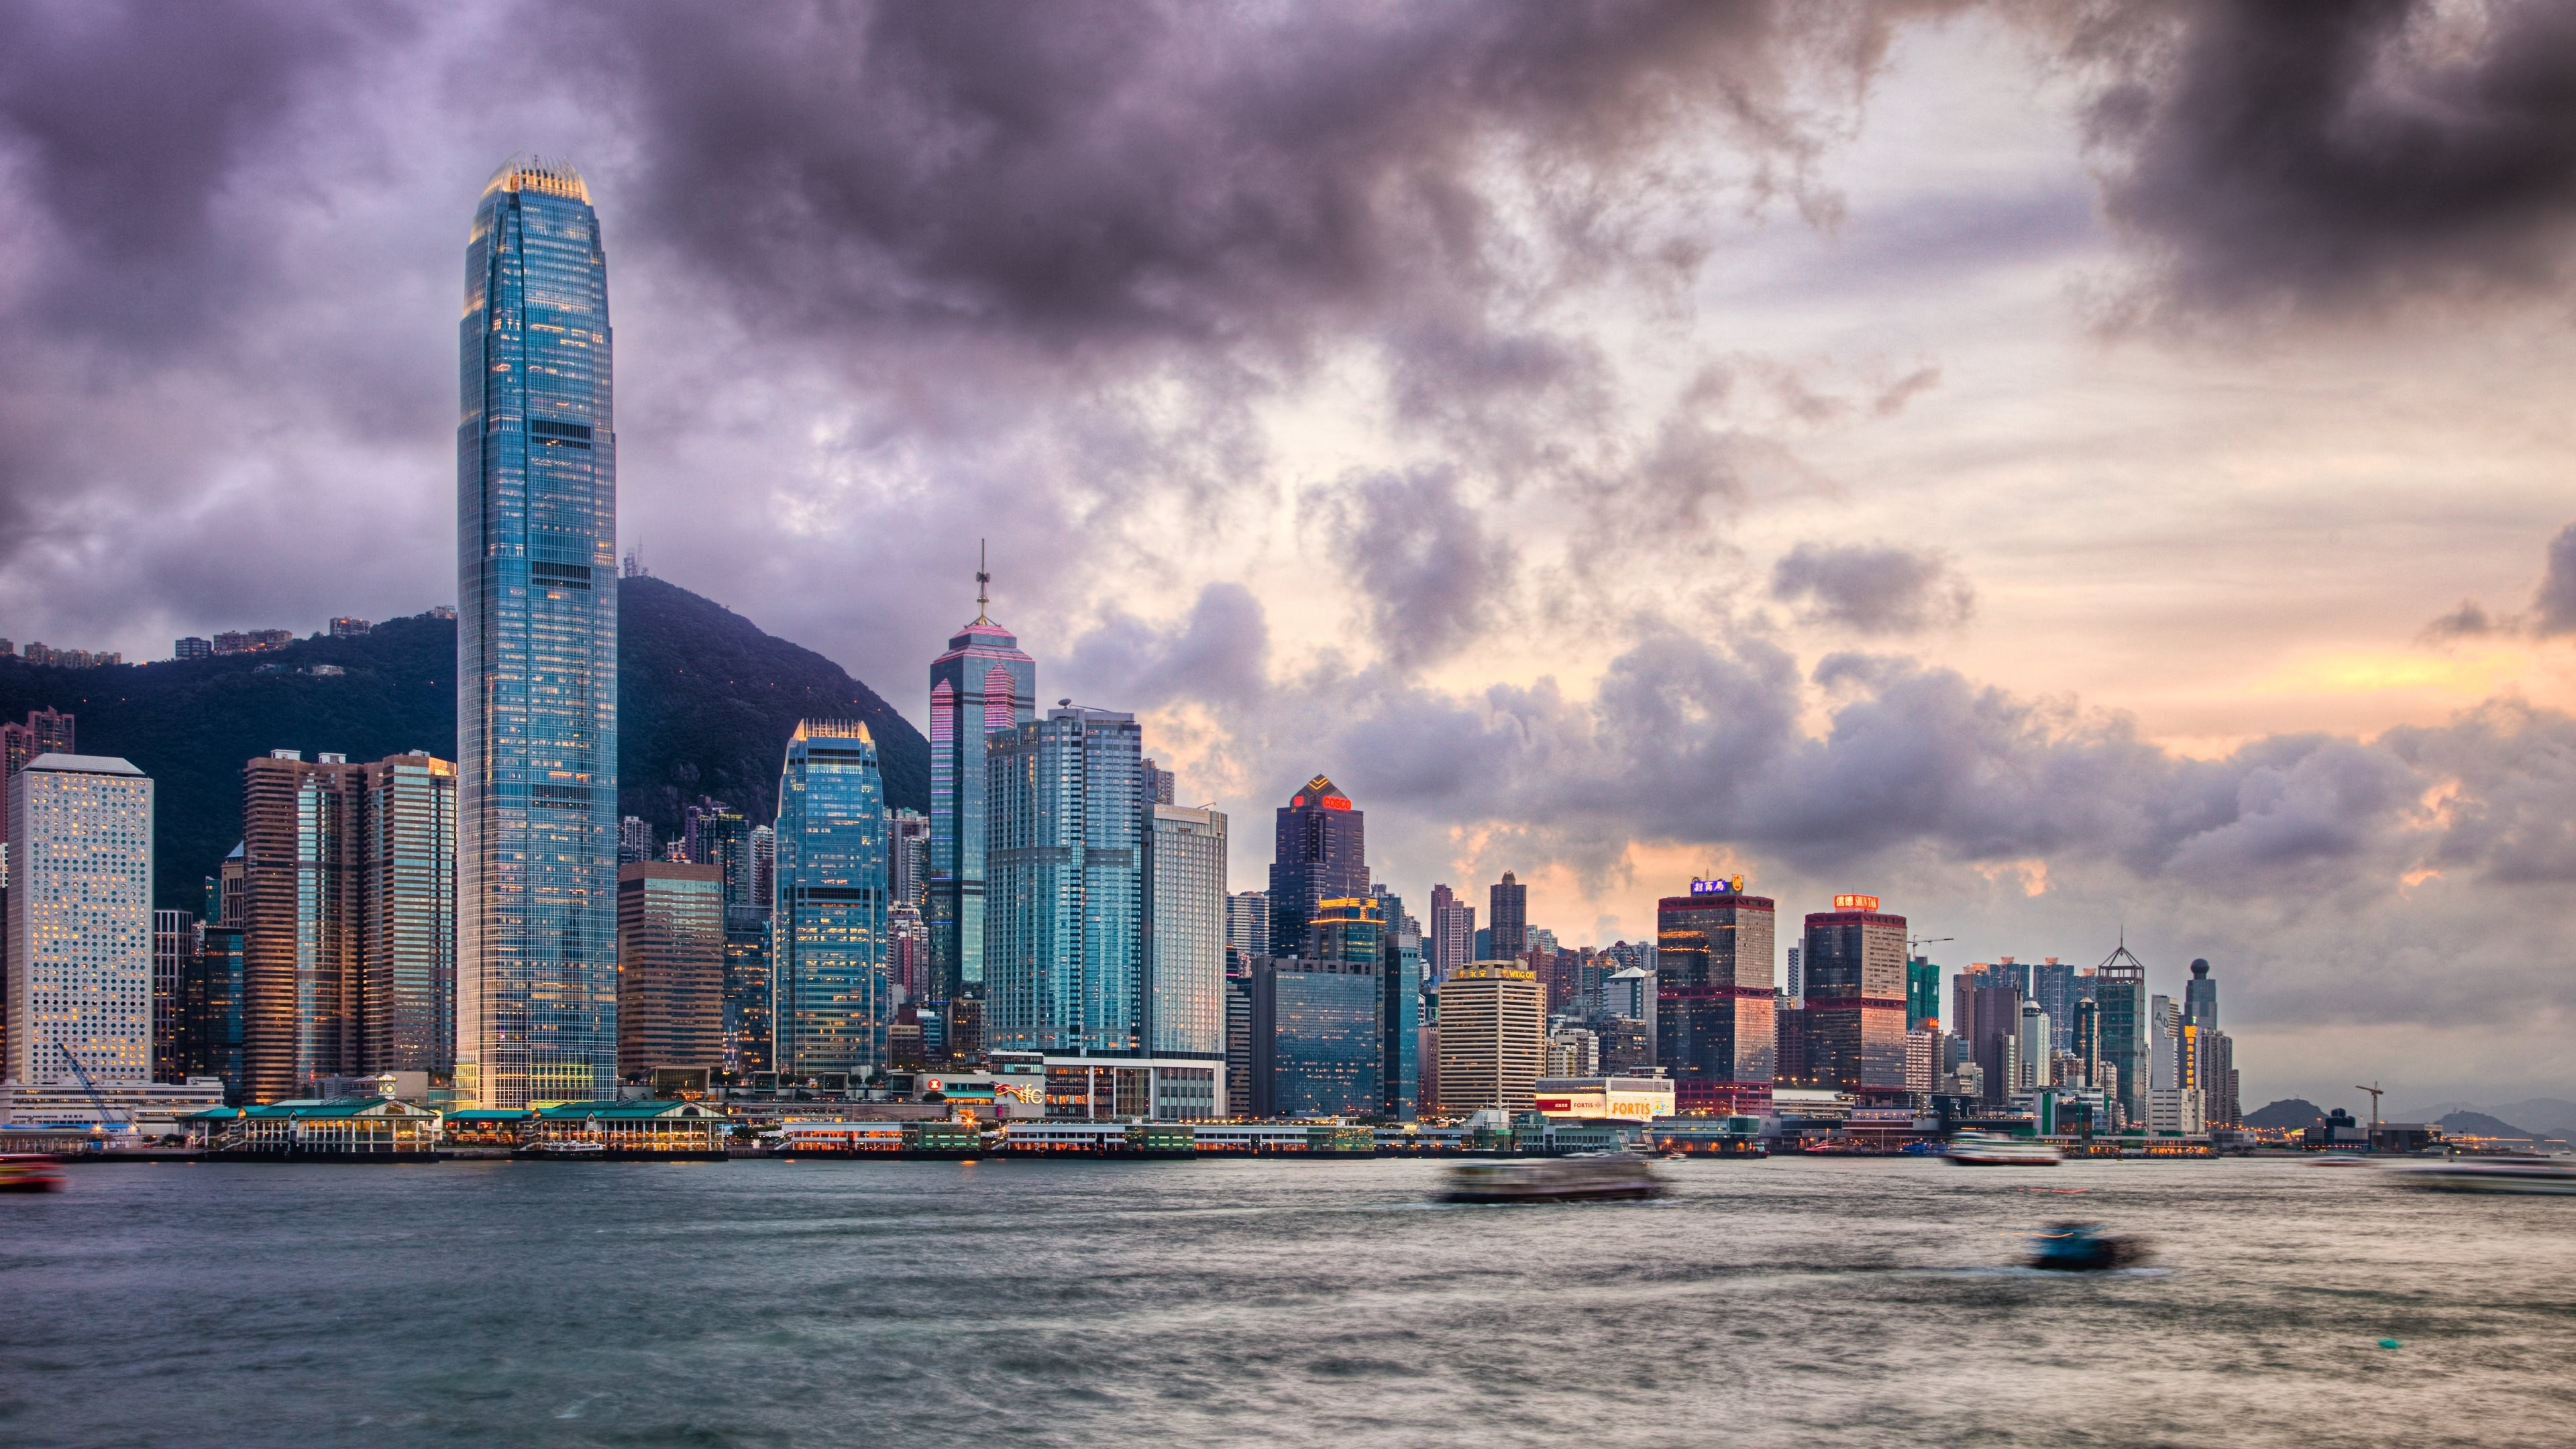 137 hong kong hd wallpapers | background images - wallpaper abyss